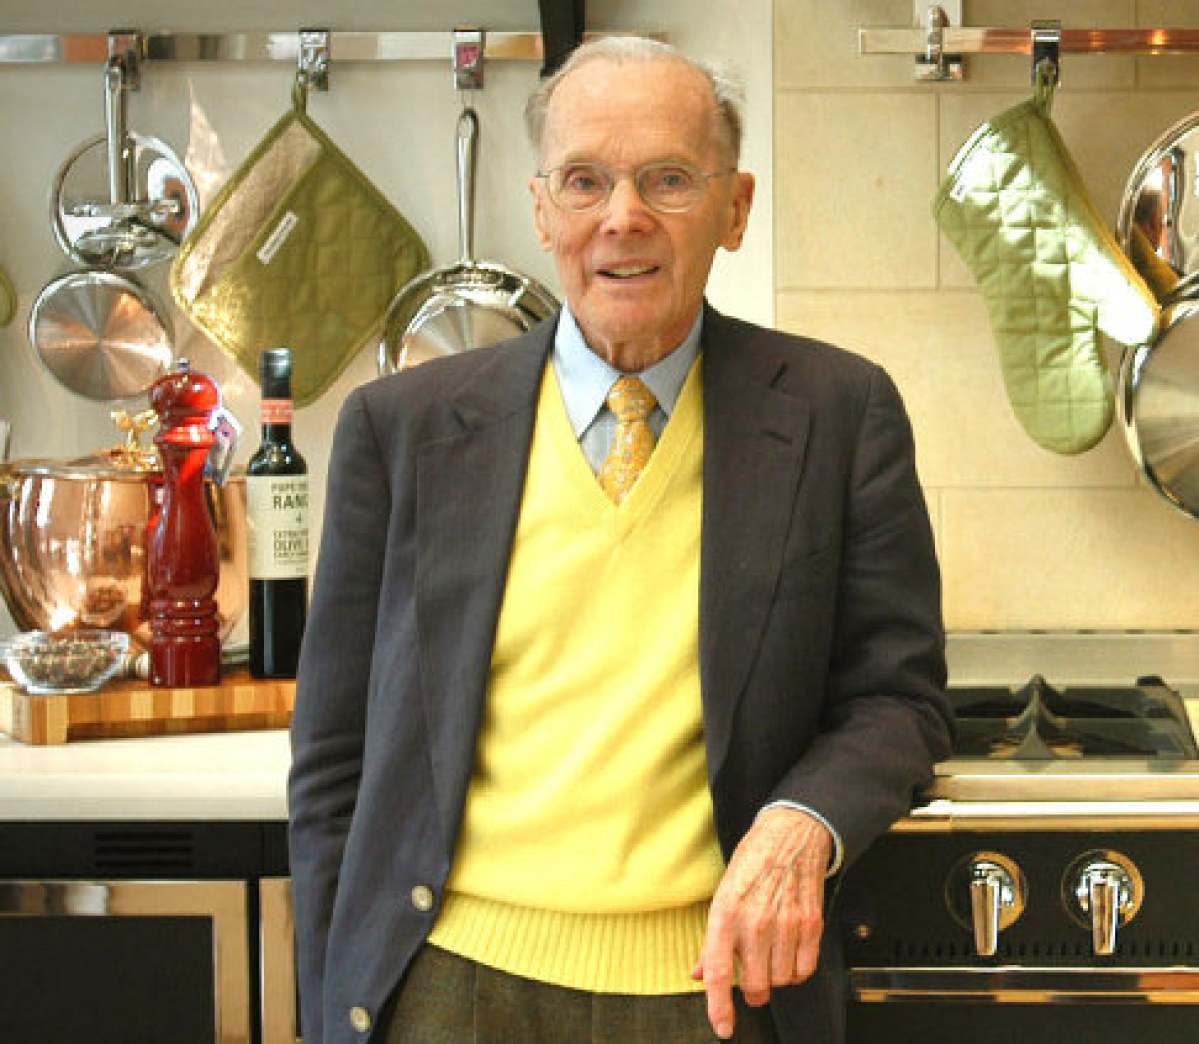 WilliamsSonoma founder inspired home cooks to soup up